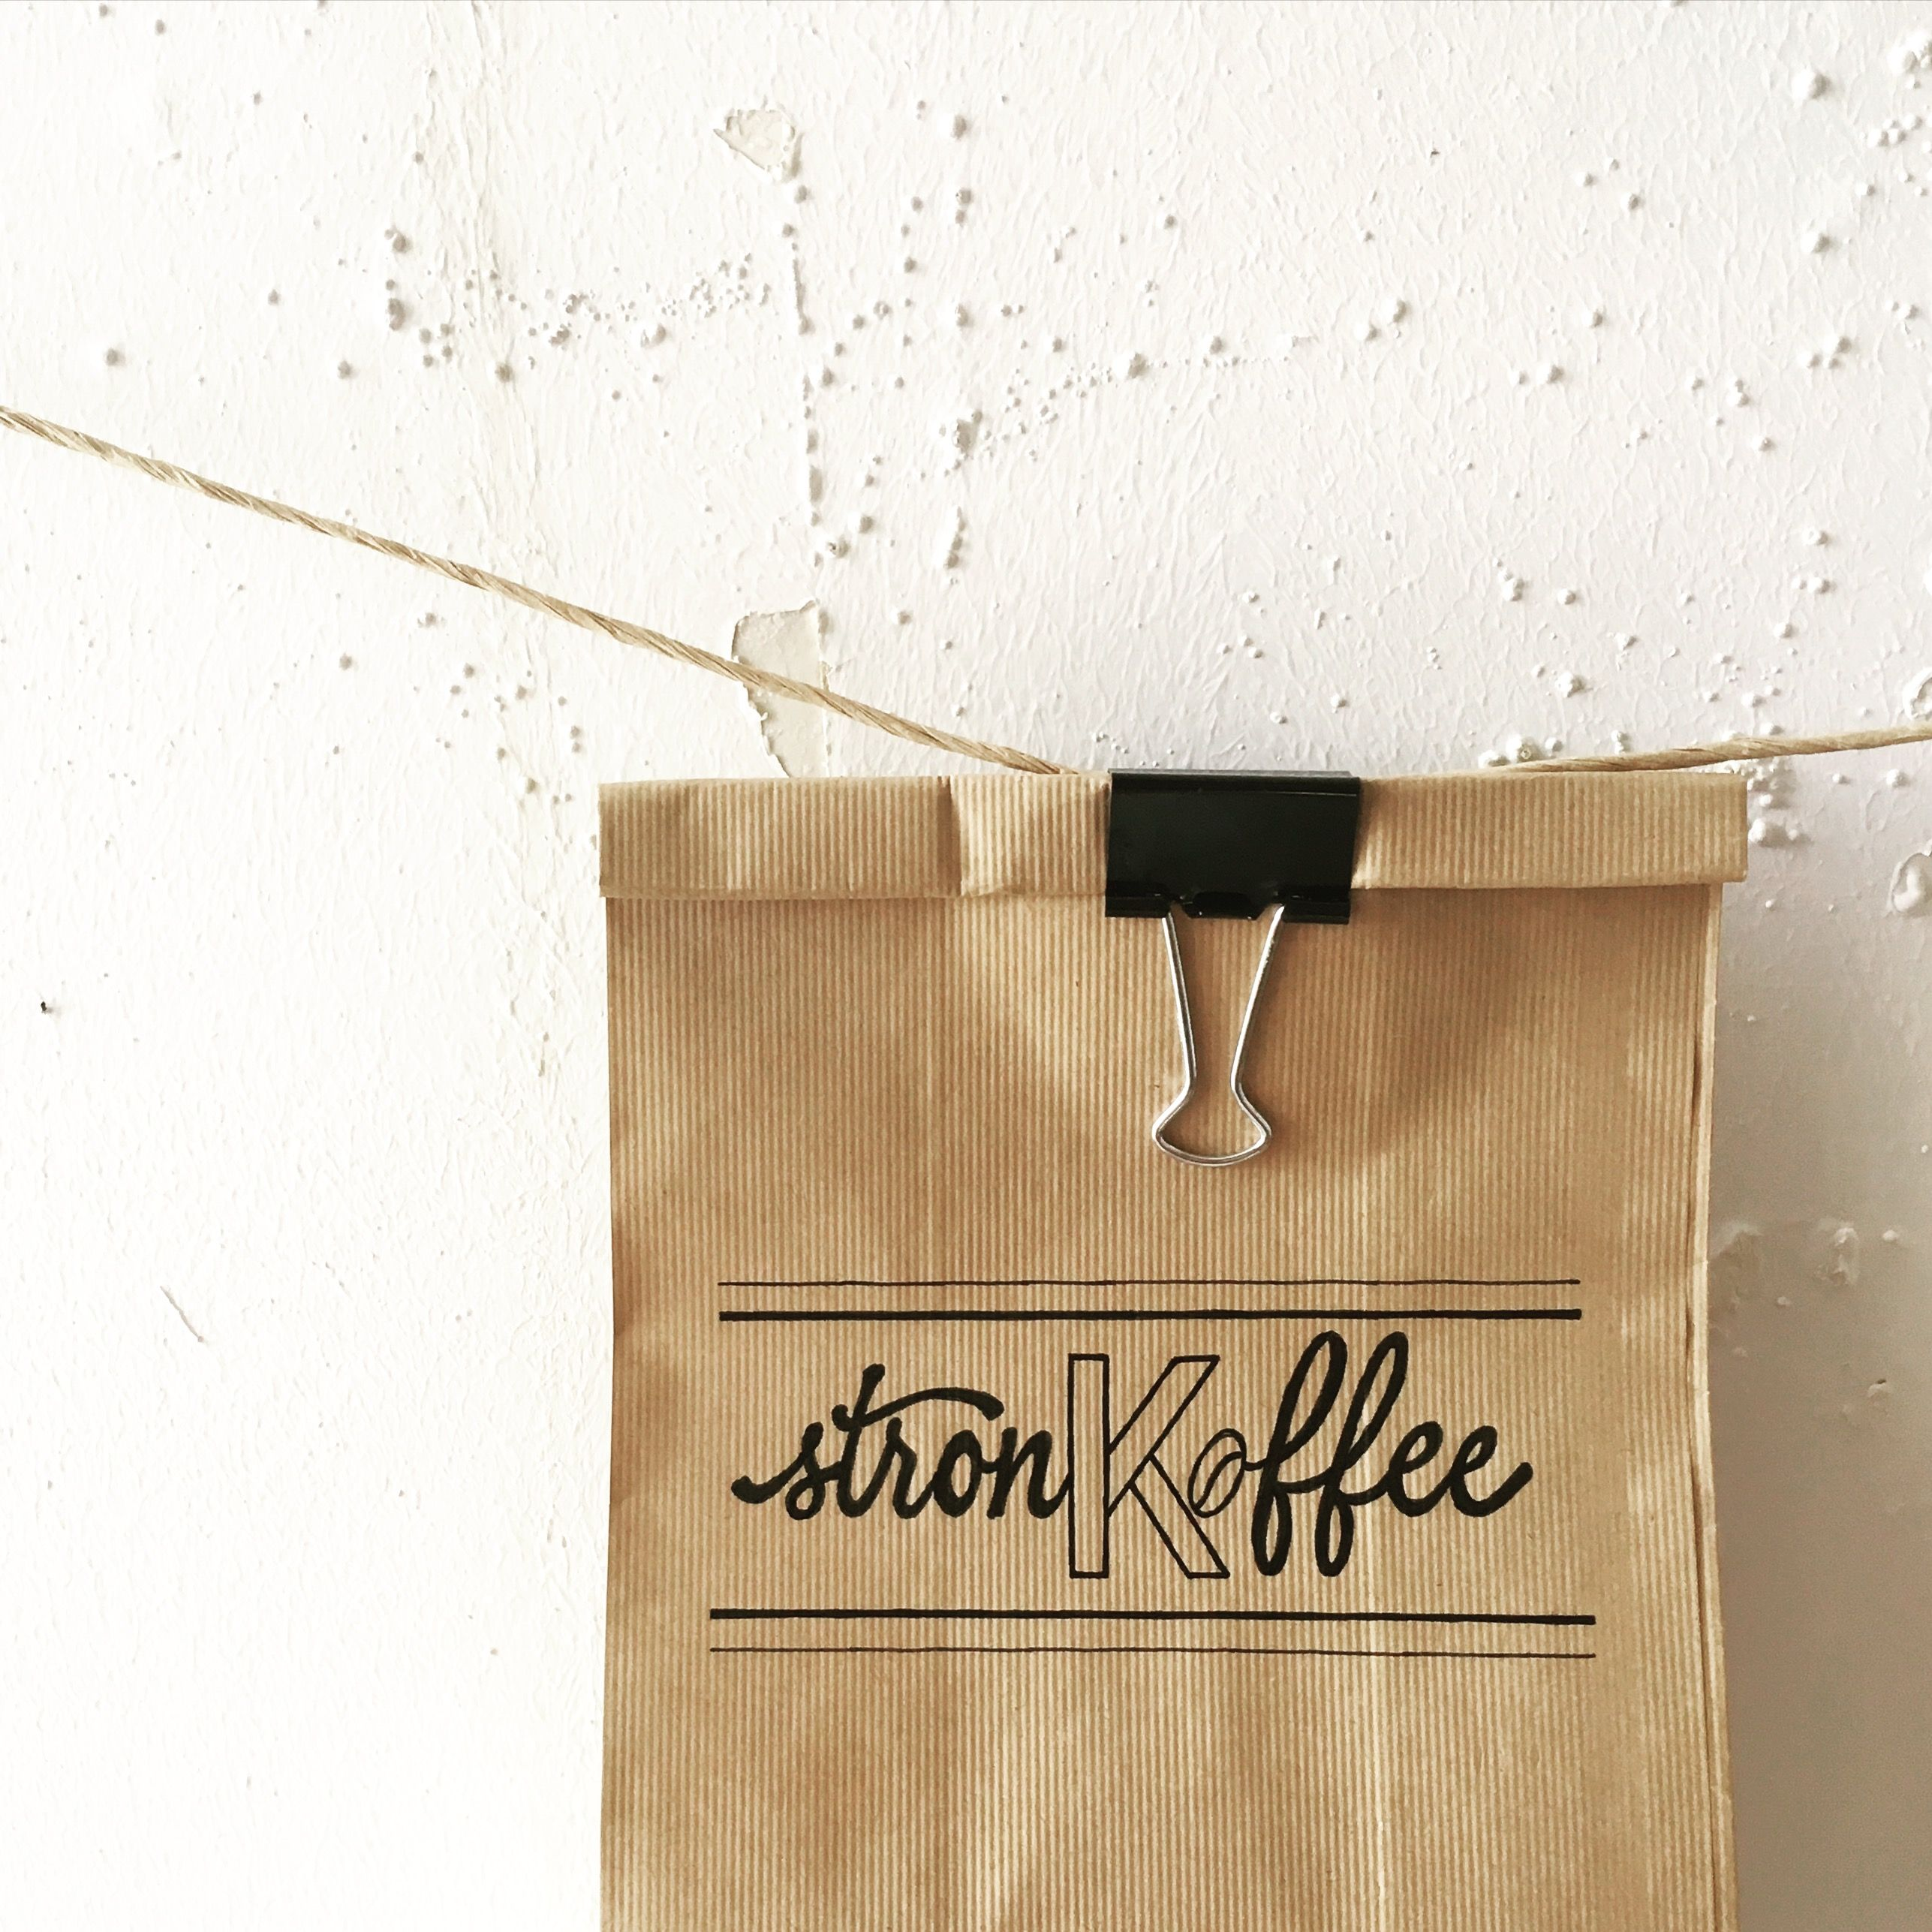 #manyemmas #typography #lettering #handlettering #stronk #koffee #strong #coffee #packaging